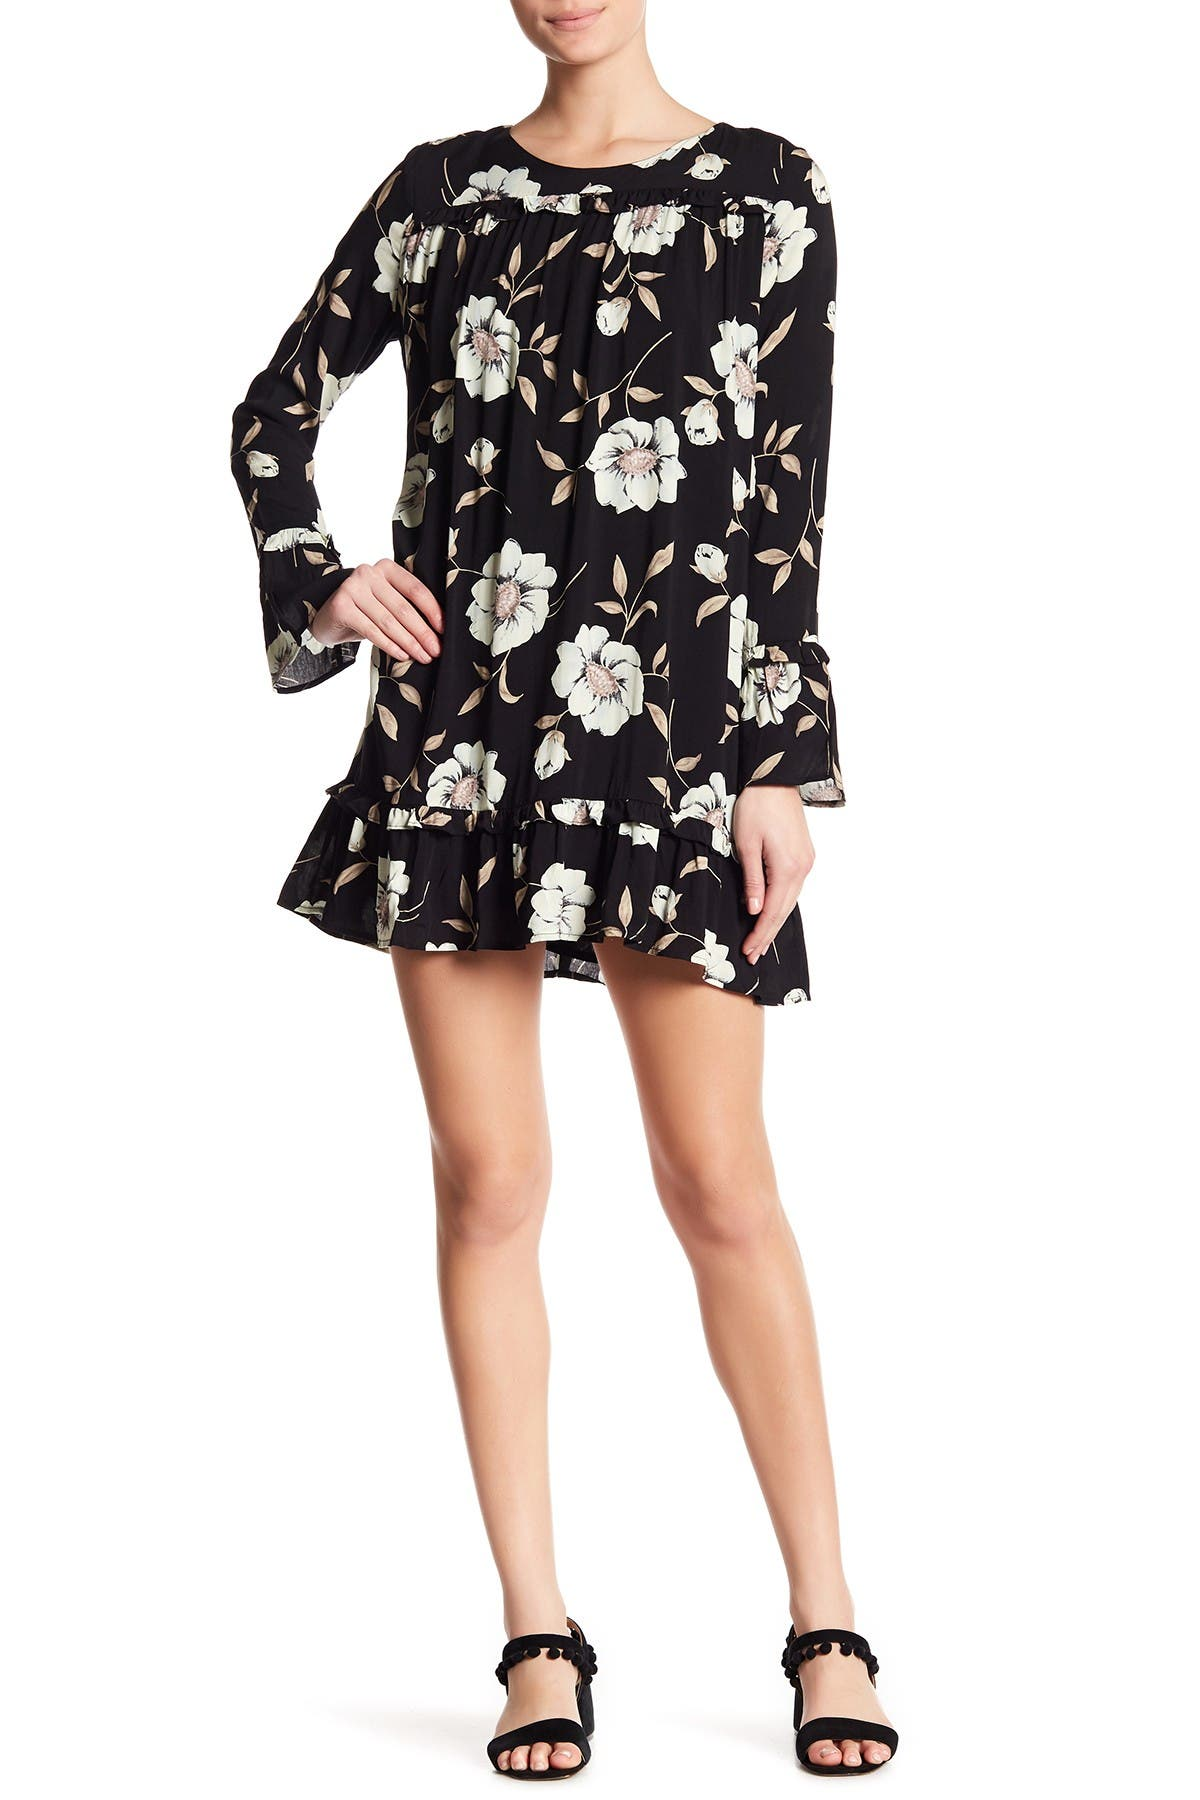 Image of Lucca Couture Gemma Floral Ruffle Sleeve Dress